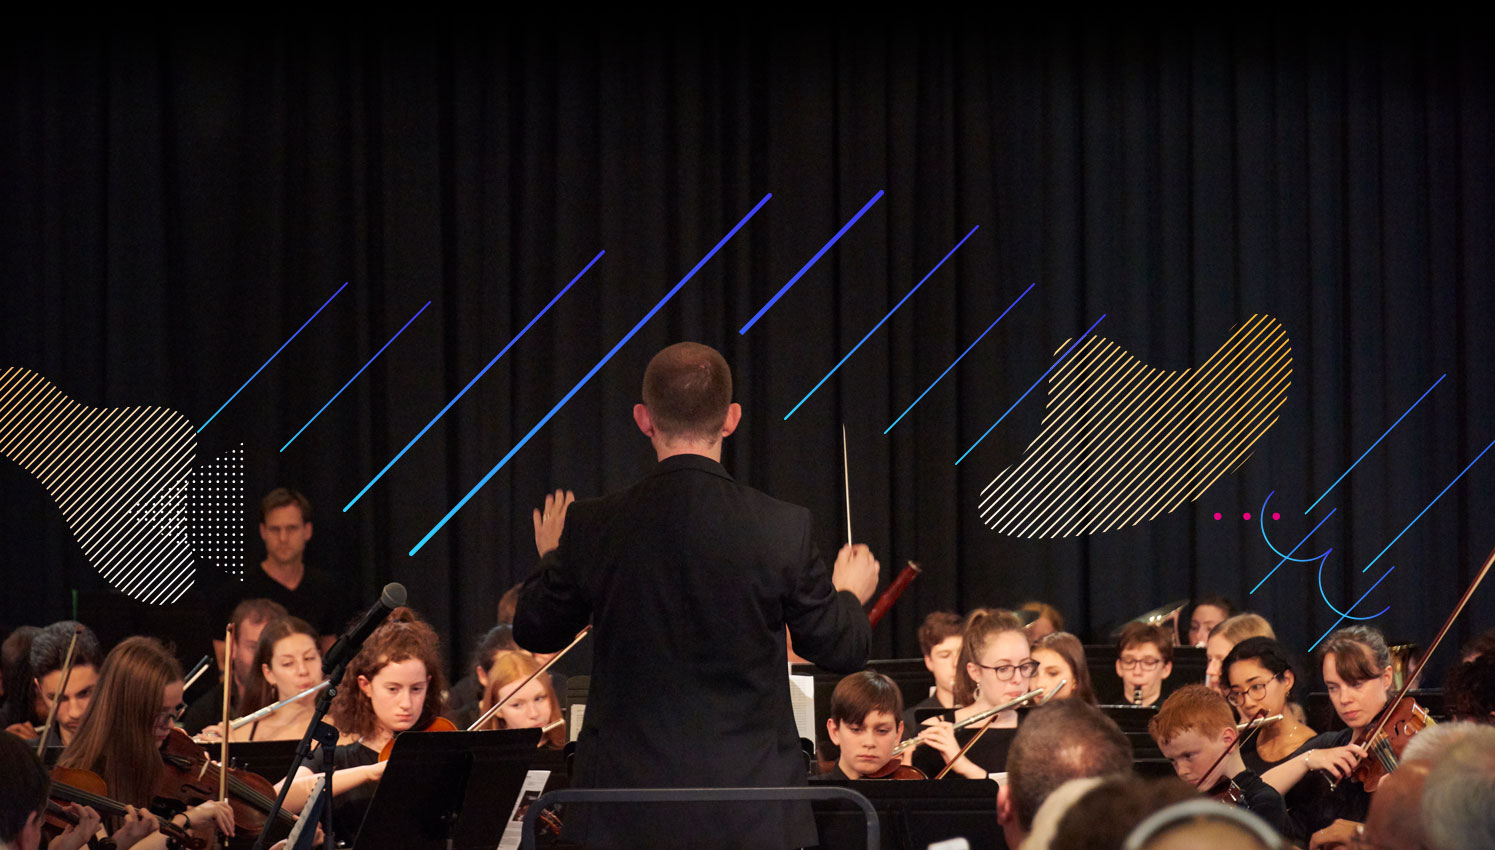 Conductor stood in front of youth orchestra